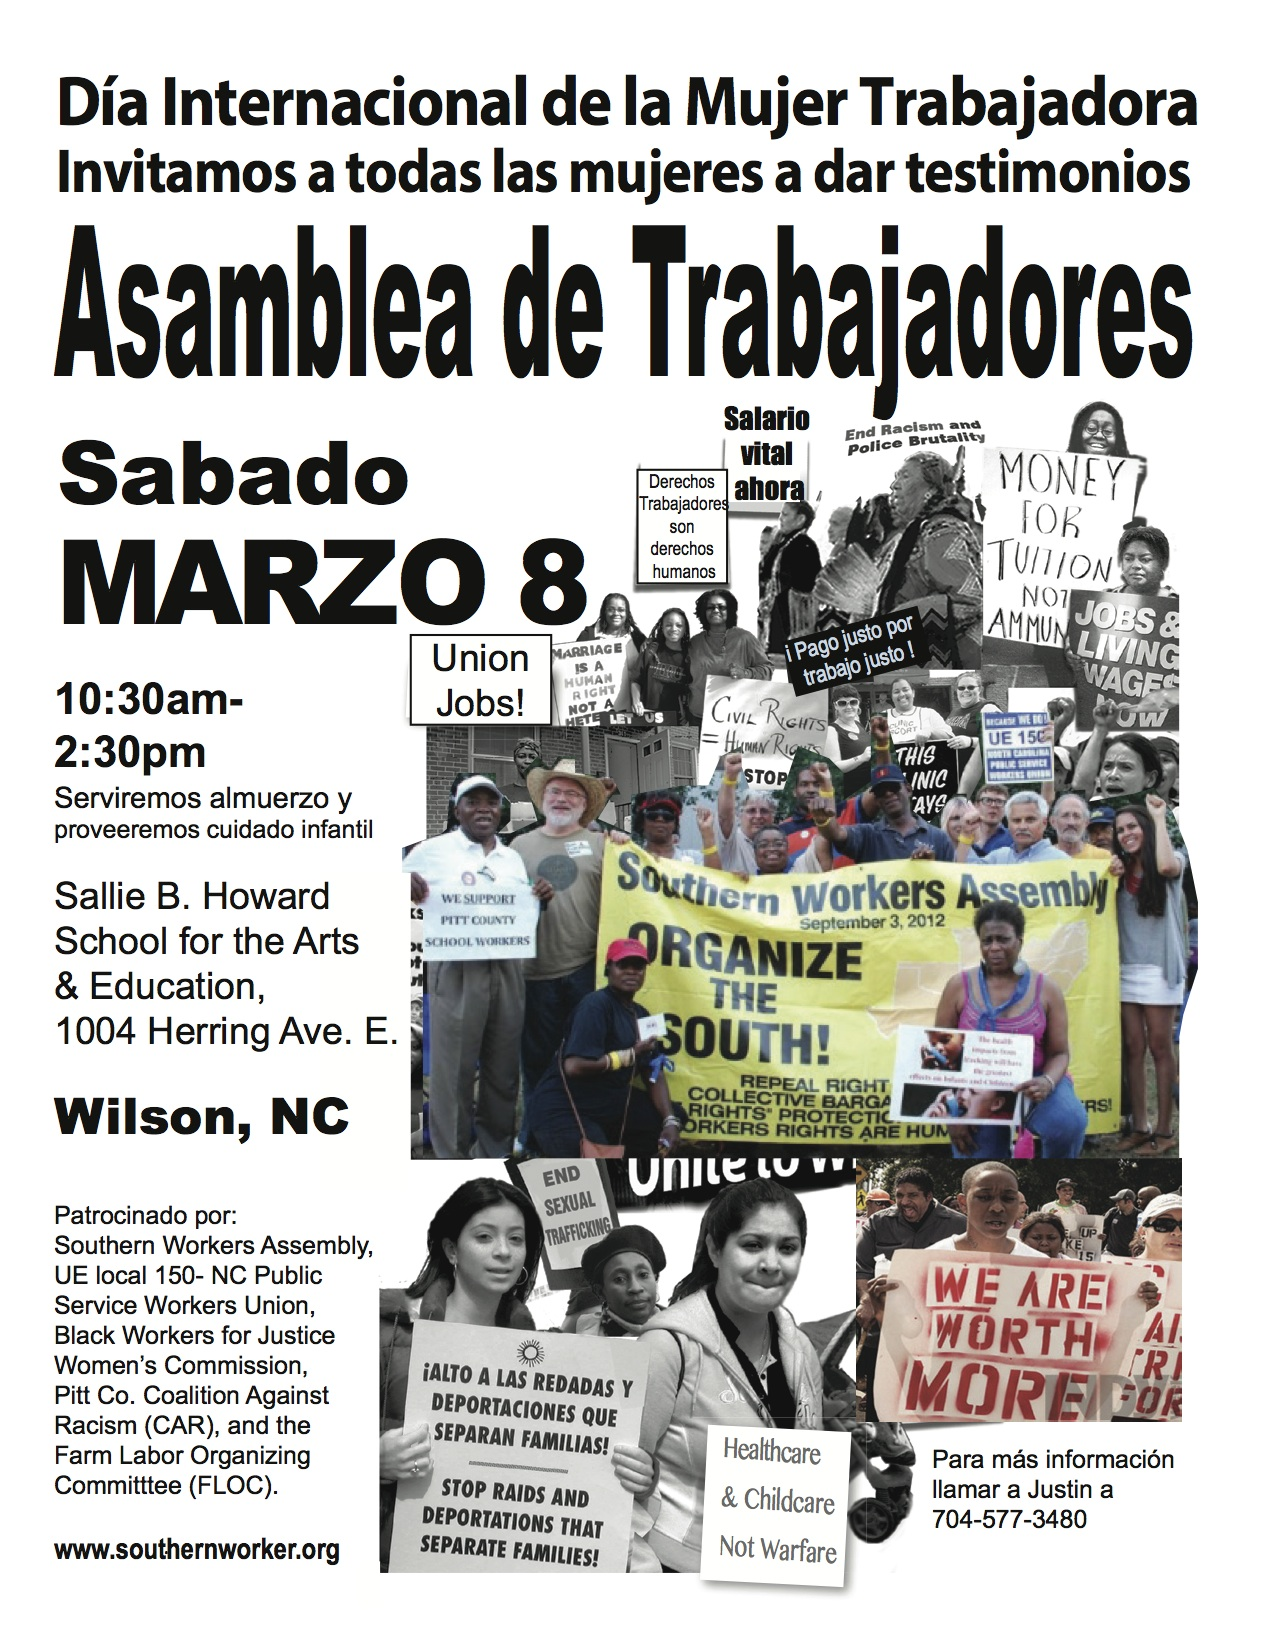 https://peoplespowerassemblies.org/wp-content/uploads/2014/03/Espanol-SWA-IWWD-Wilson-Assembly-March-8-2014-Flyer-copy.jpg